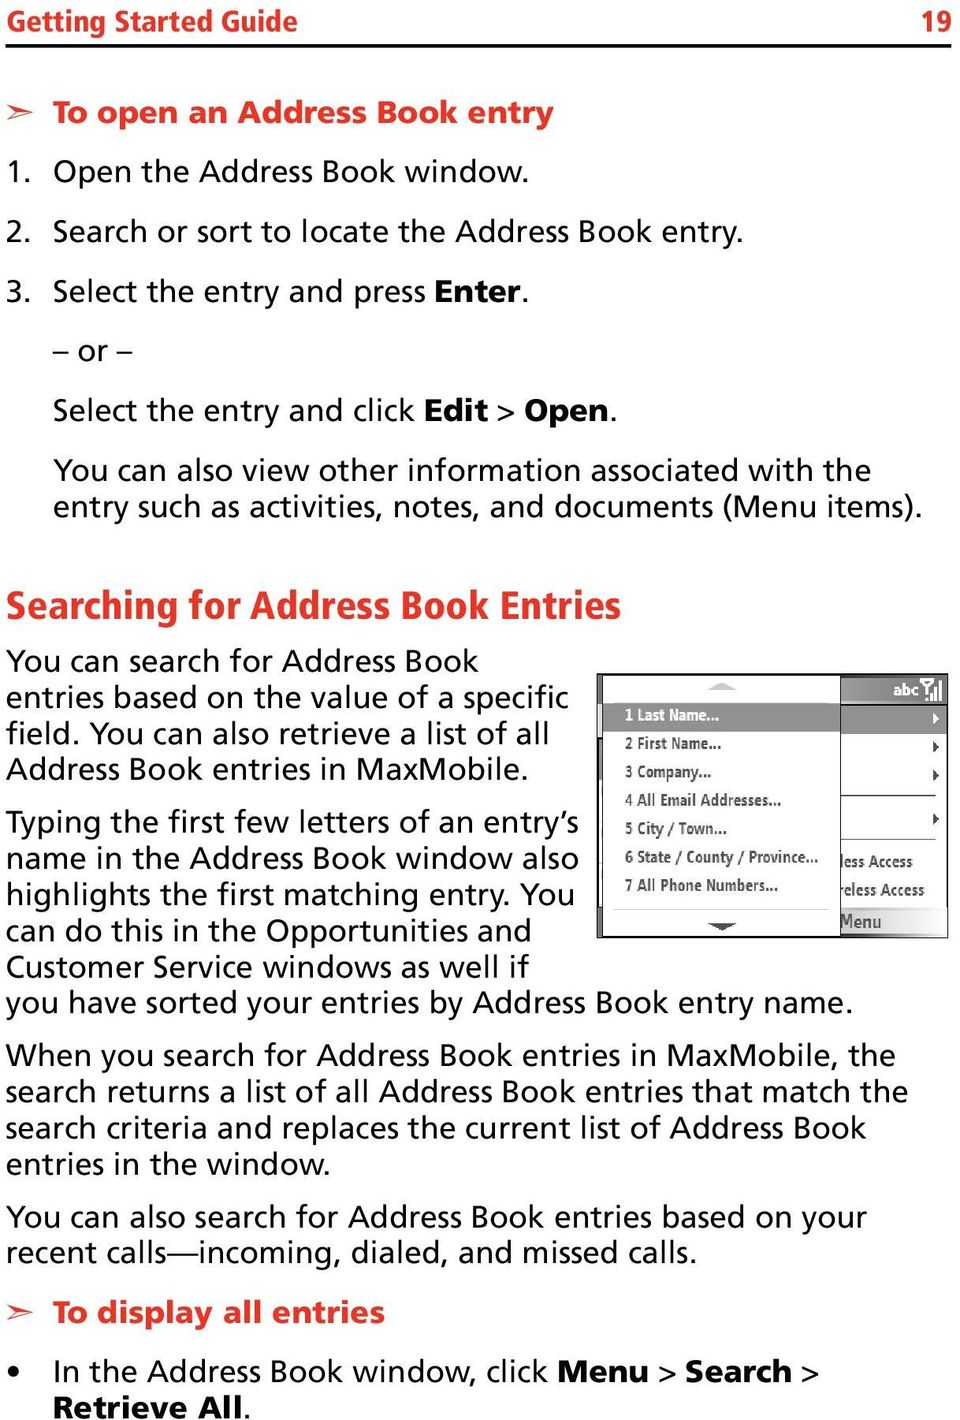 Searching for Address Book Entries You can search for Address Book entries based on the value of a specific field. You can also retrieve a list of all Address Book entries in MaxMobile.